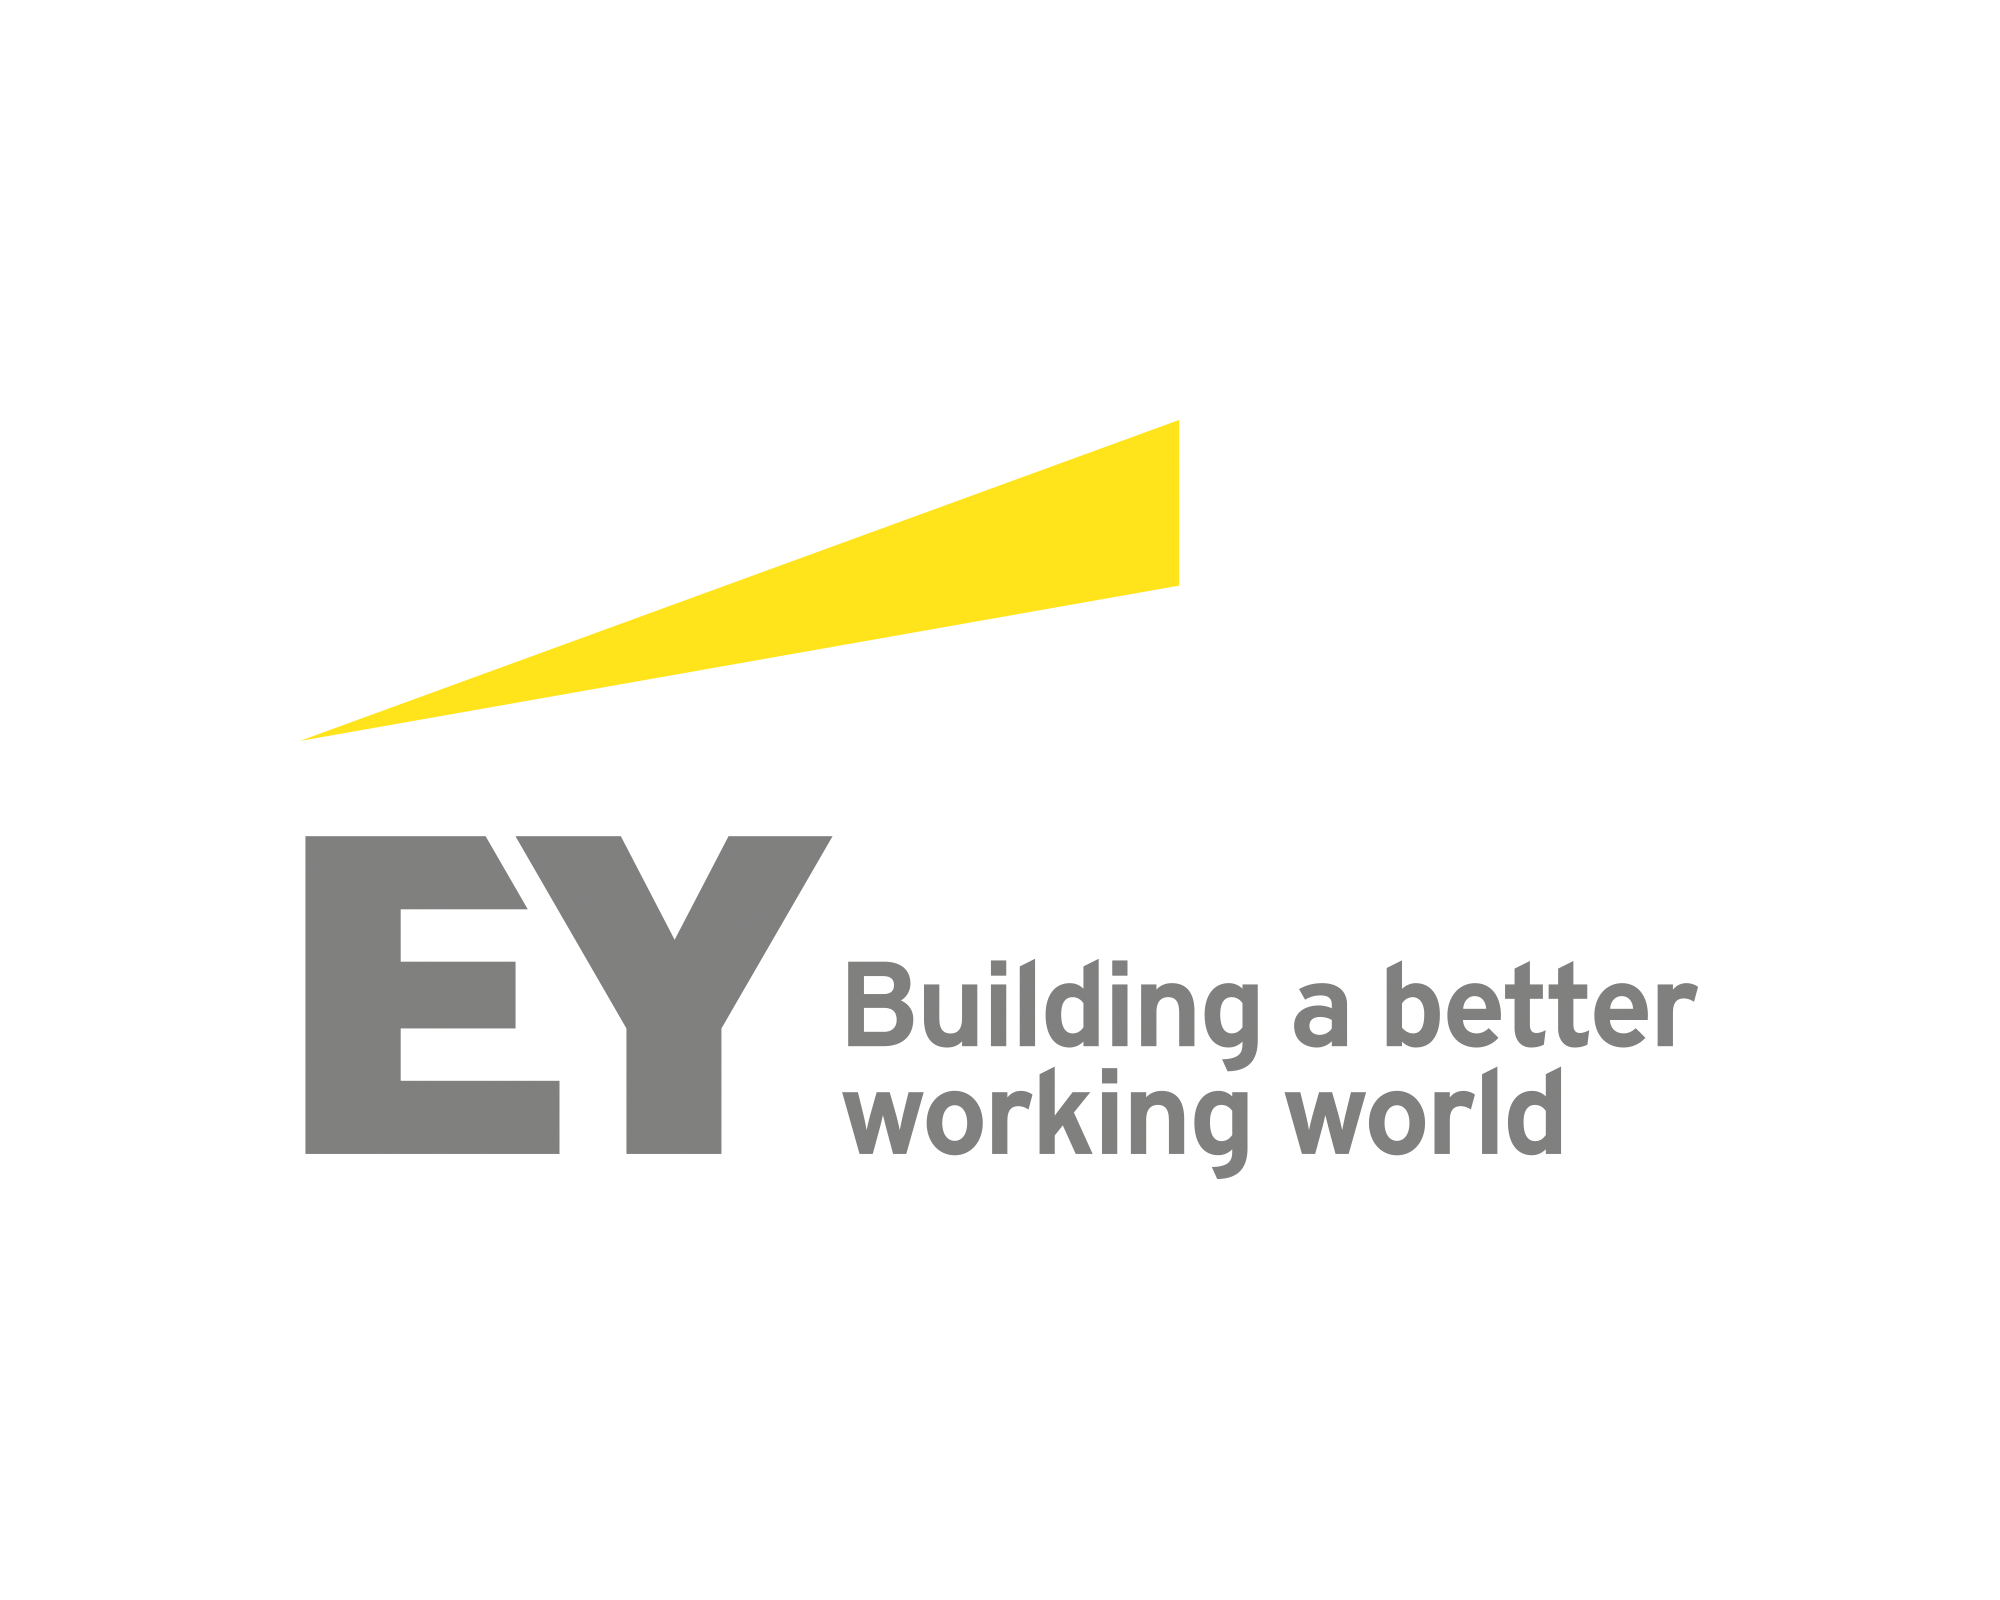 ernst and young website